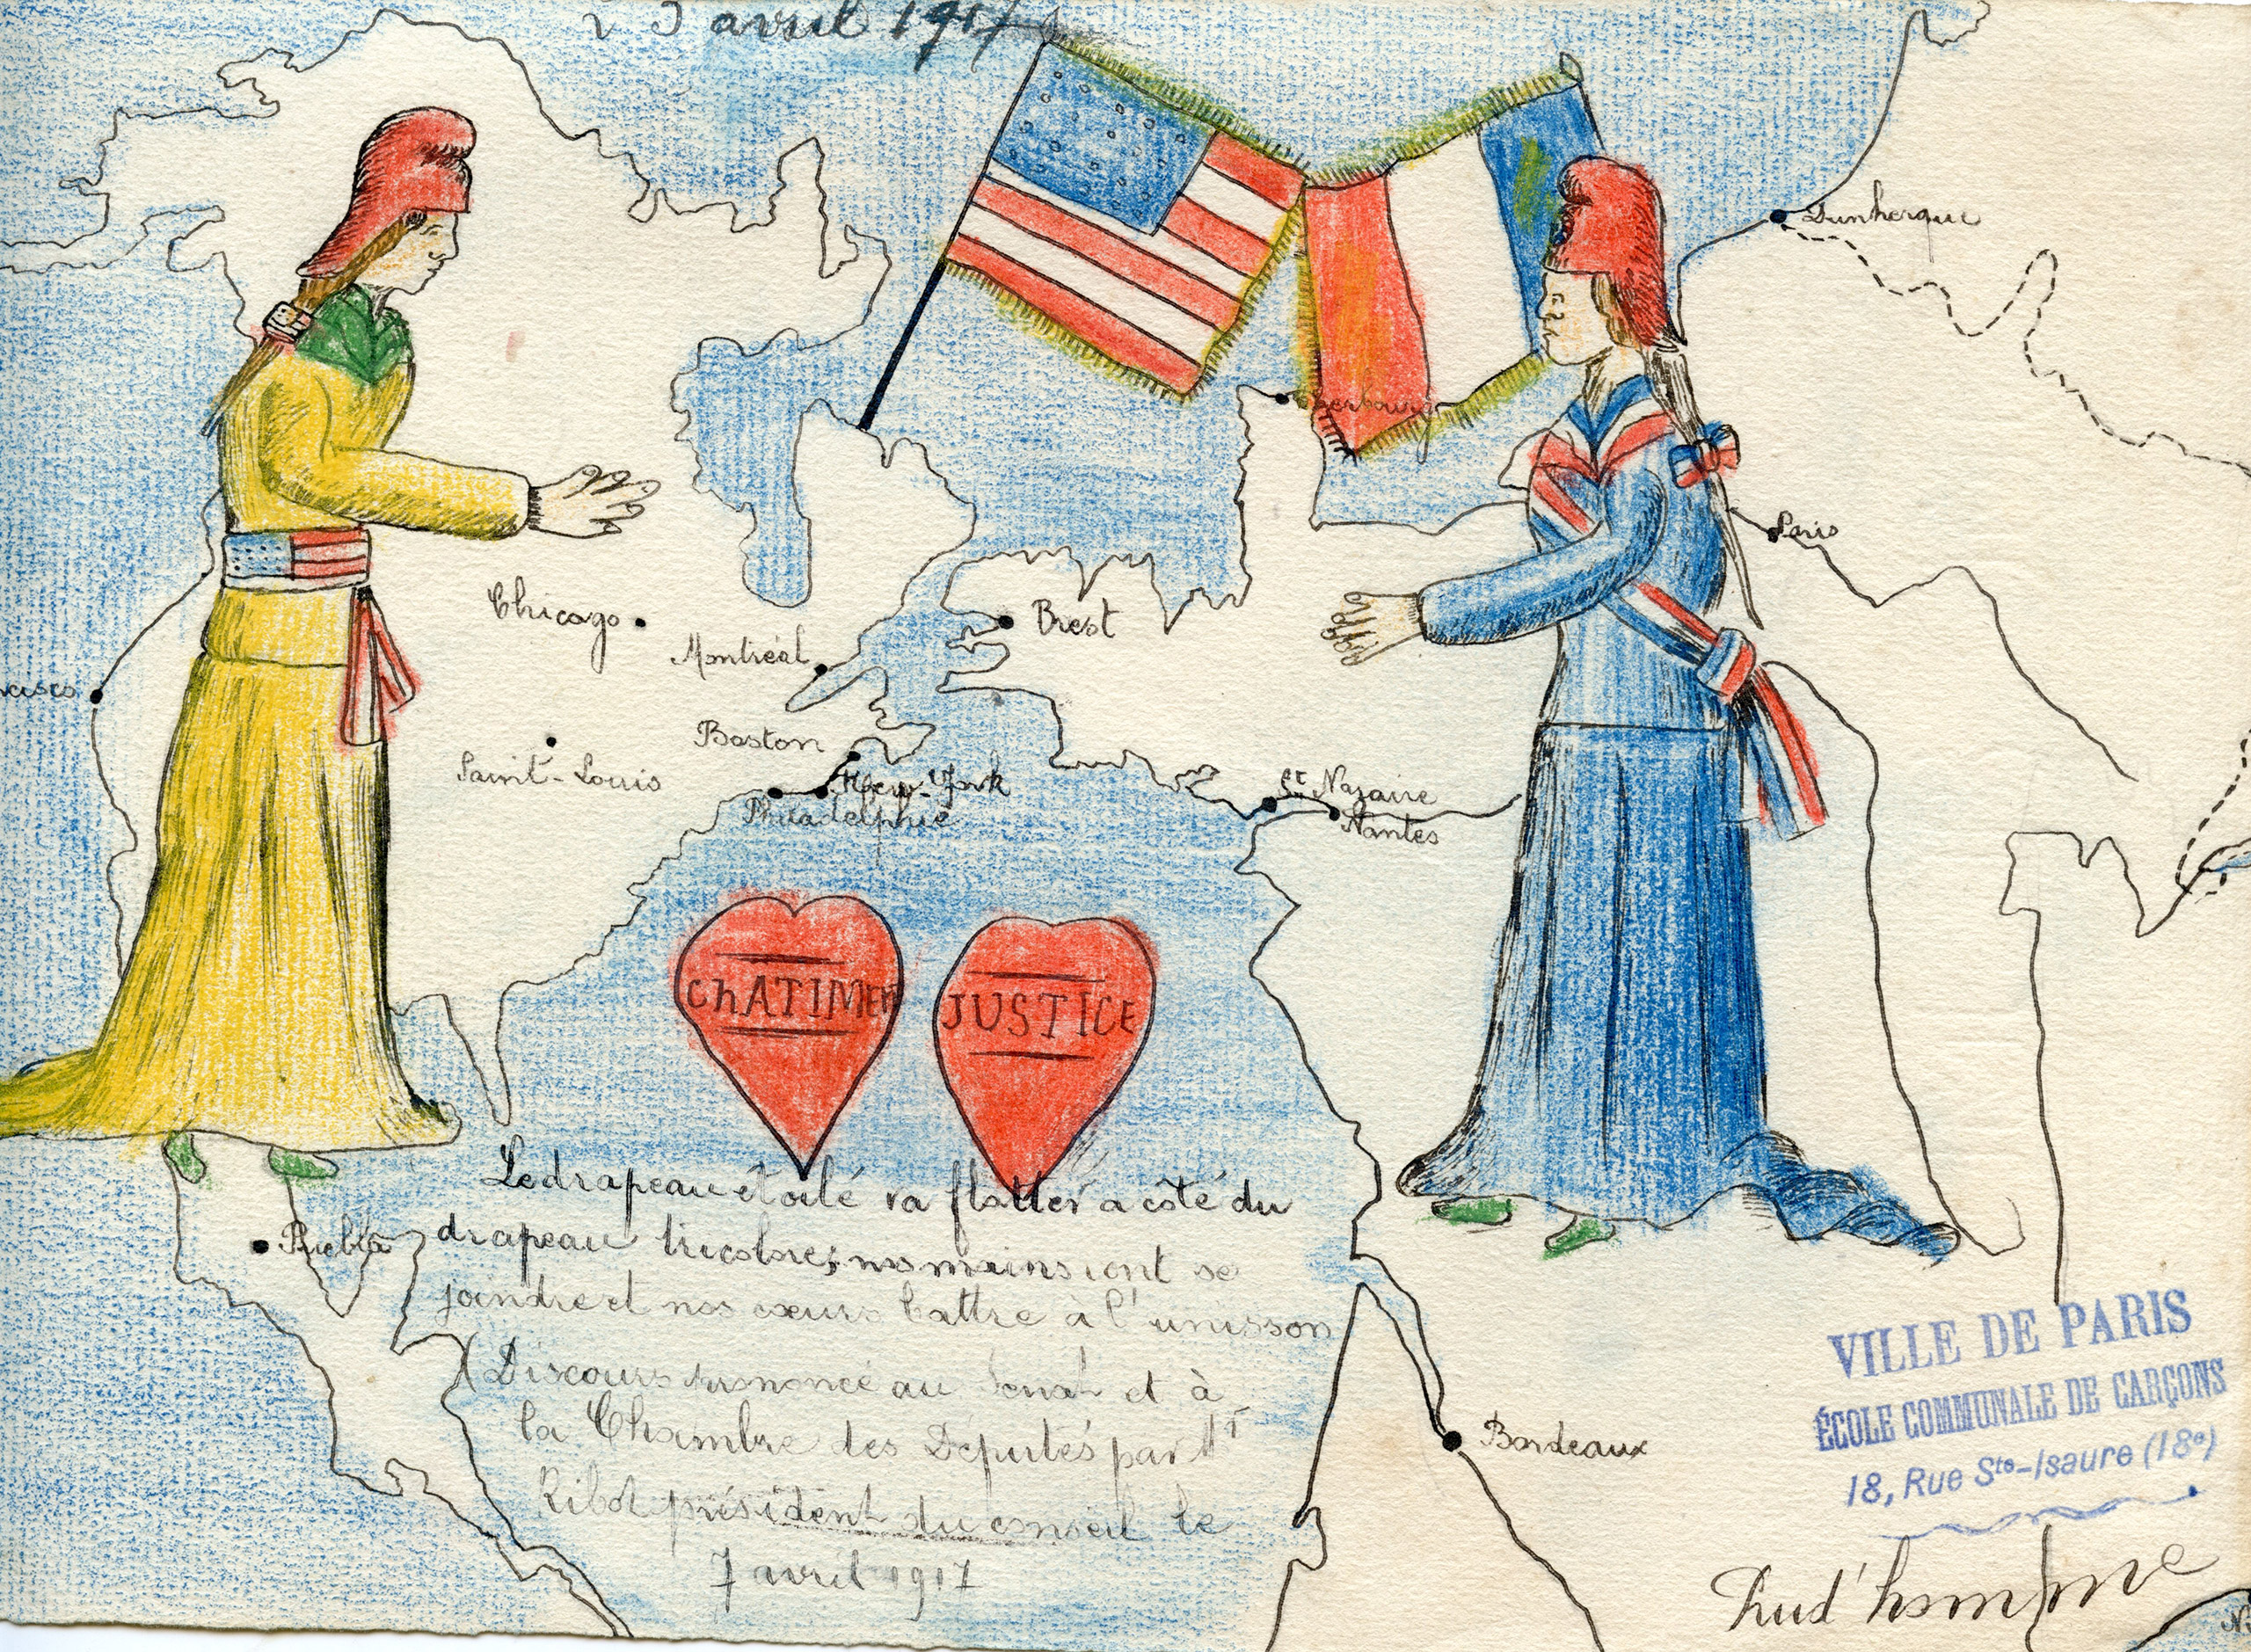 The French schoolchildren often chose to draw allegorical figures that emphasized the enduring relationship between France and the United States. In this image, Columbia representing America and Marianne representing France reach out to each other in a gesture of solidarity, while each of their nations' flags appear to fuse together, further emphasizing the two countries' unity.